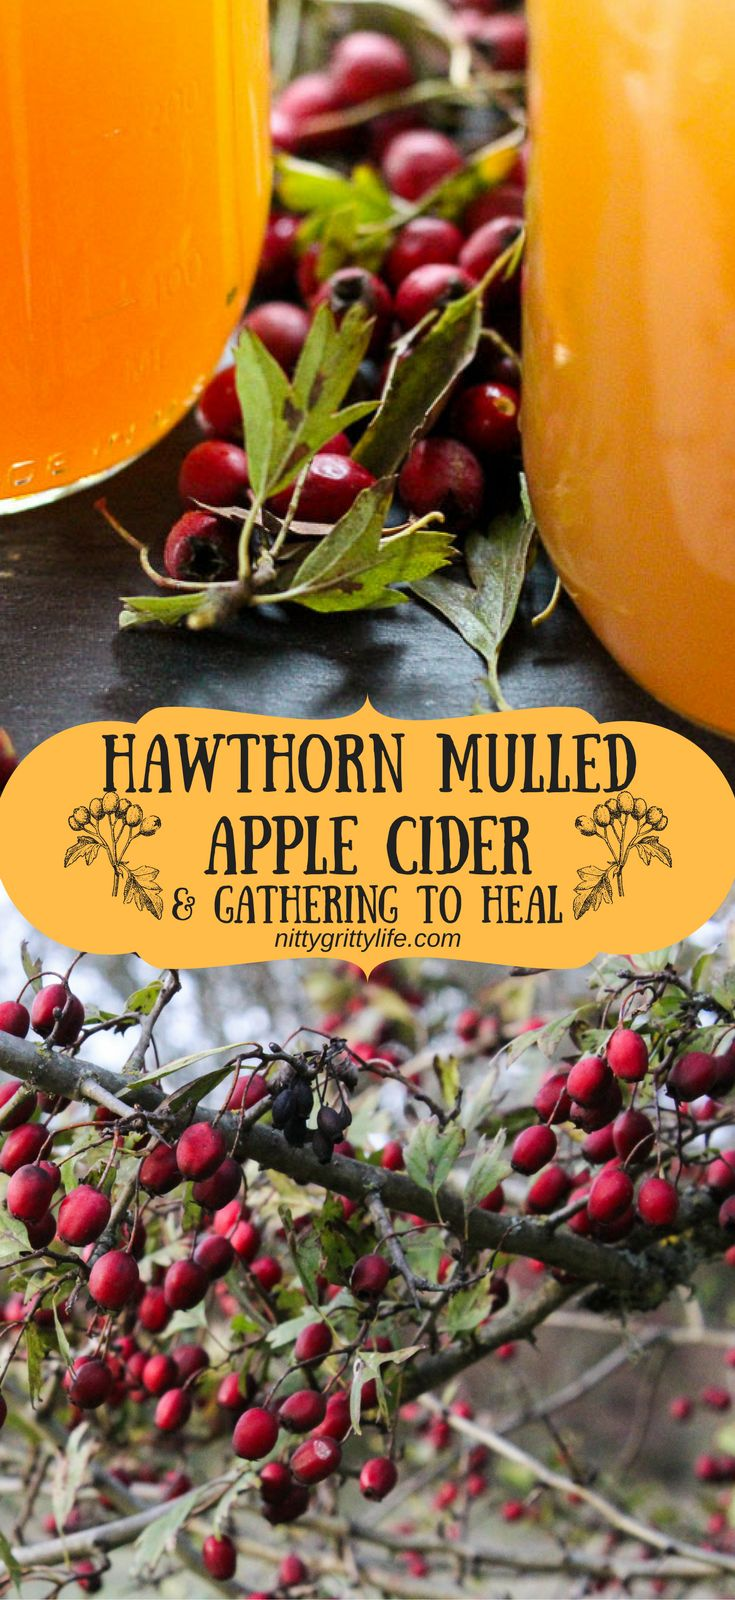 Gather around for a mug of uplifting, magical hawthorn mulled apple cider to mend our metaphorical hearts during times of great sorrow and grief. via @nittygrittylife